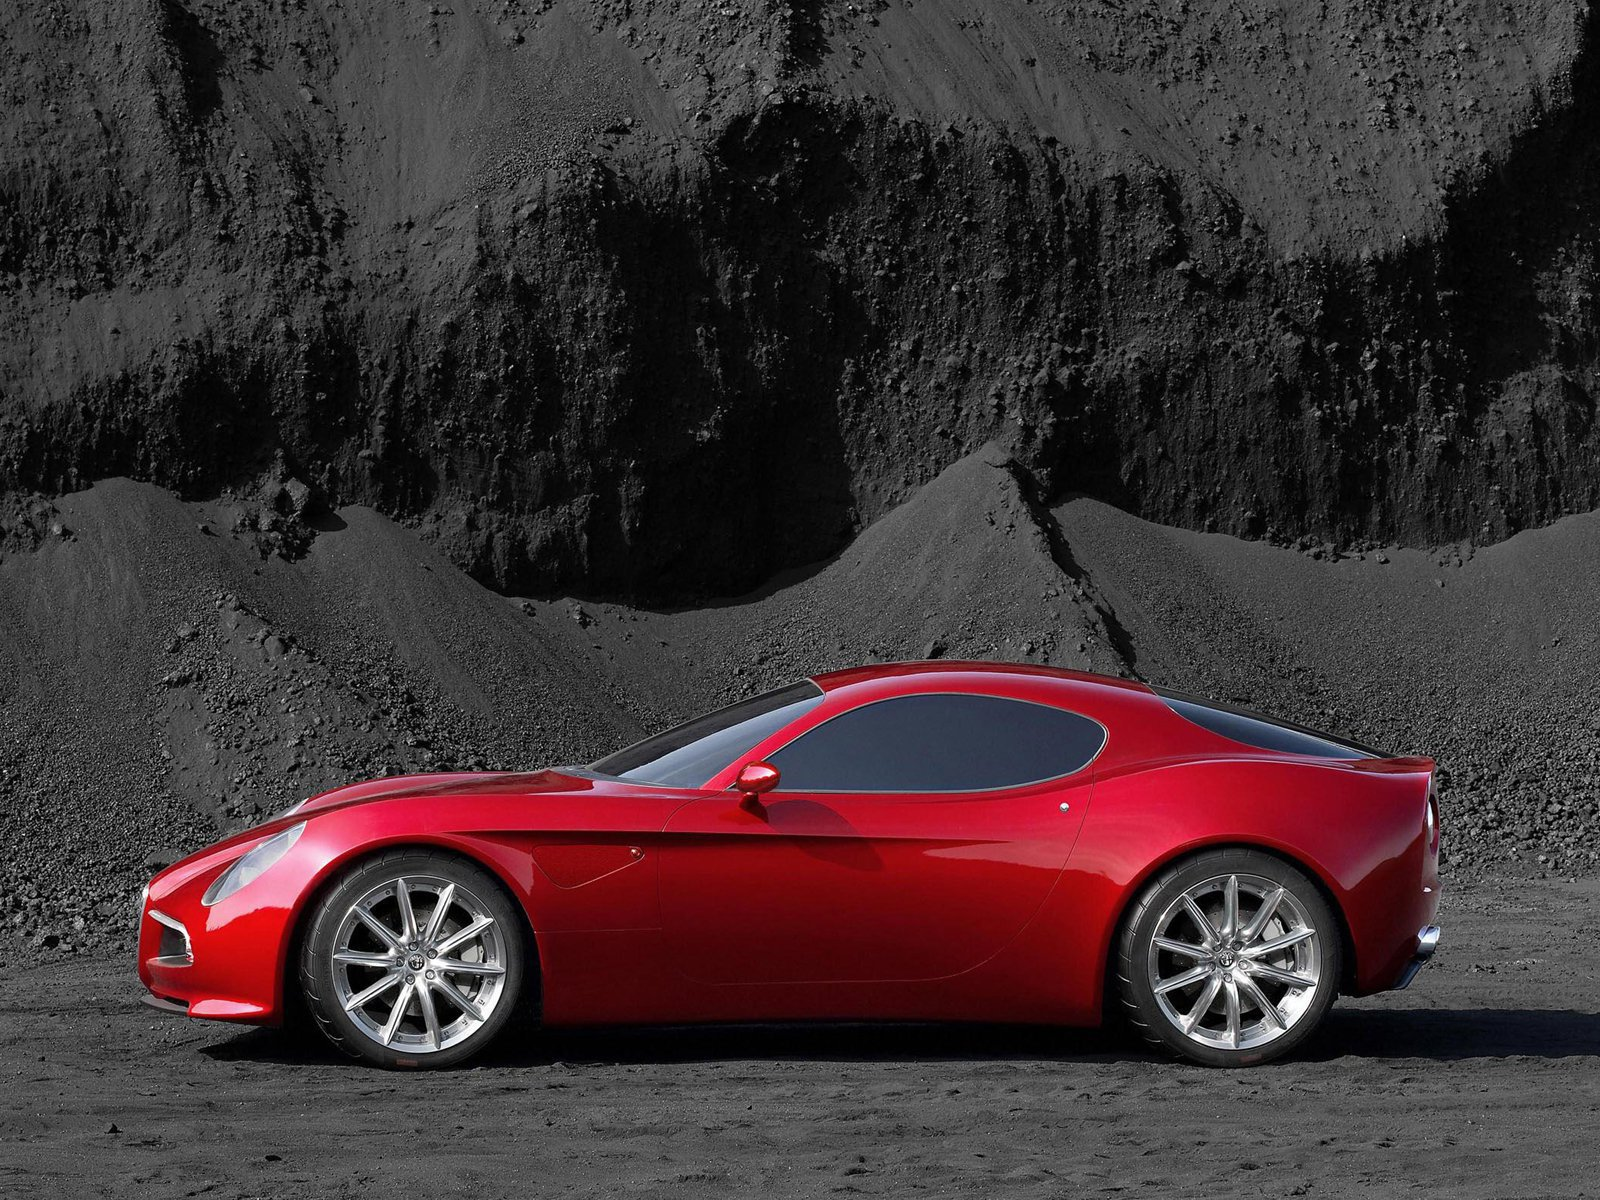 Latest Auto Cars Wallpapers 2013 New 2013 Alfa Romeo 8C Free Download